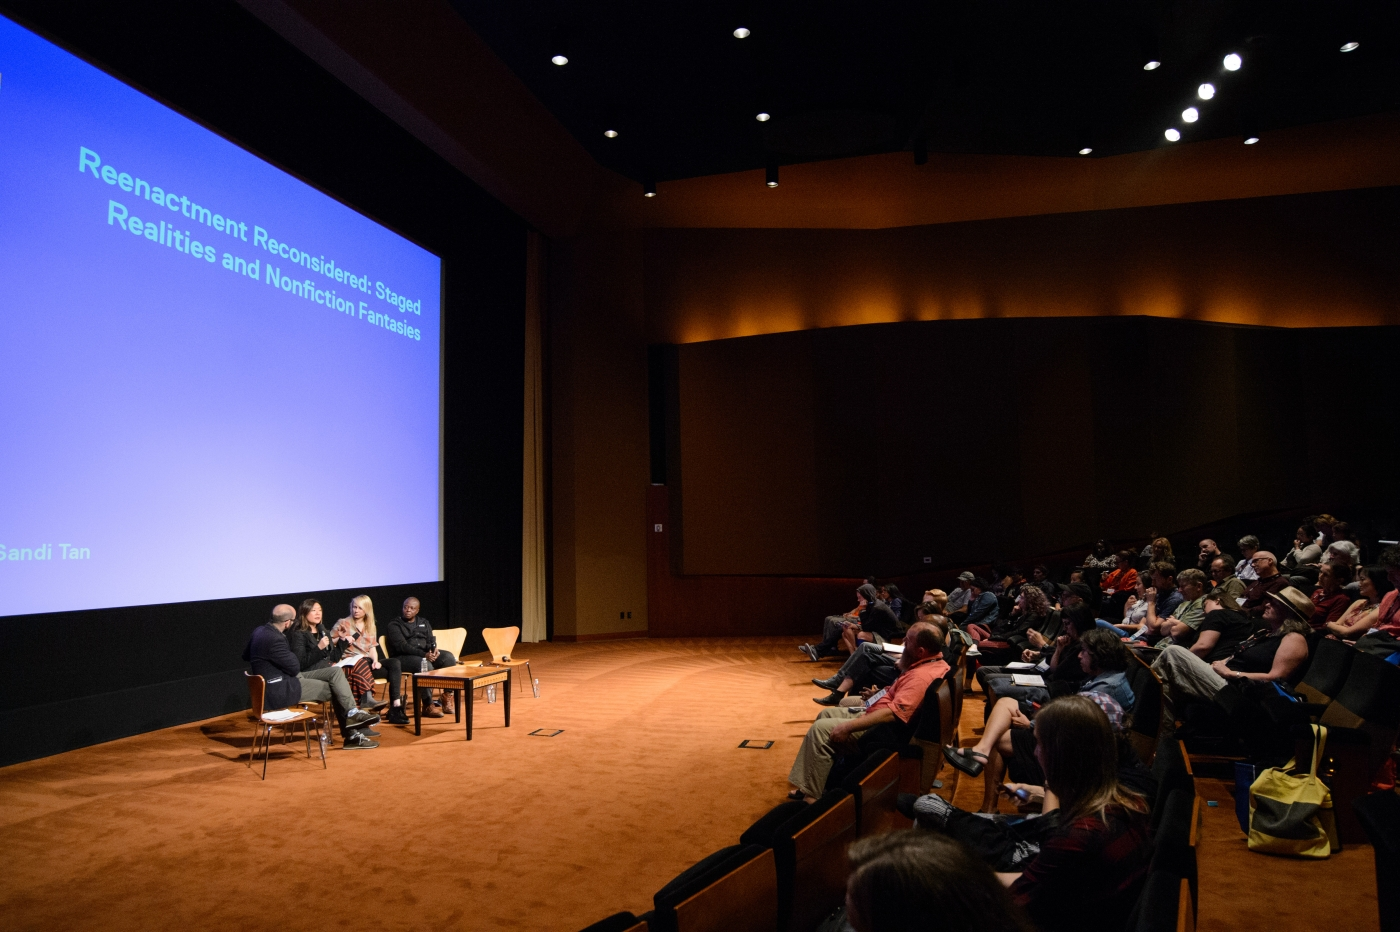 """Reenactment Reconsidered: Staged Realities and Nonfiction Fantasies"" at Getting Real '18. Left to right: Moderator Robert Greene, Sandi Tan, Kitty Green and Yance Ford. Courtesy of AMPAS."